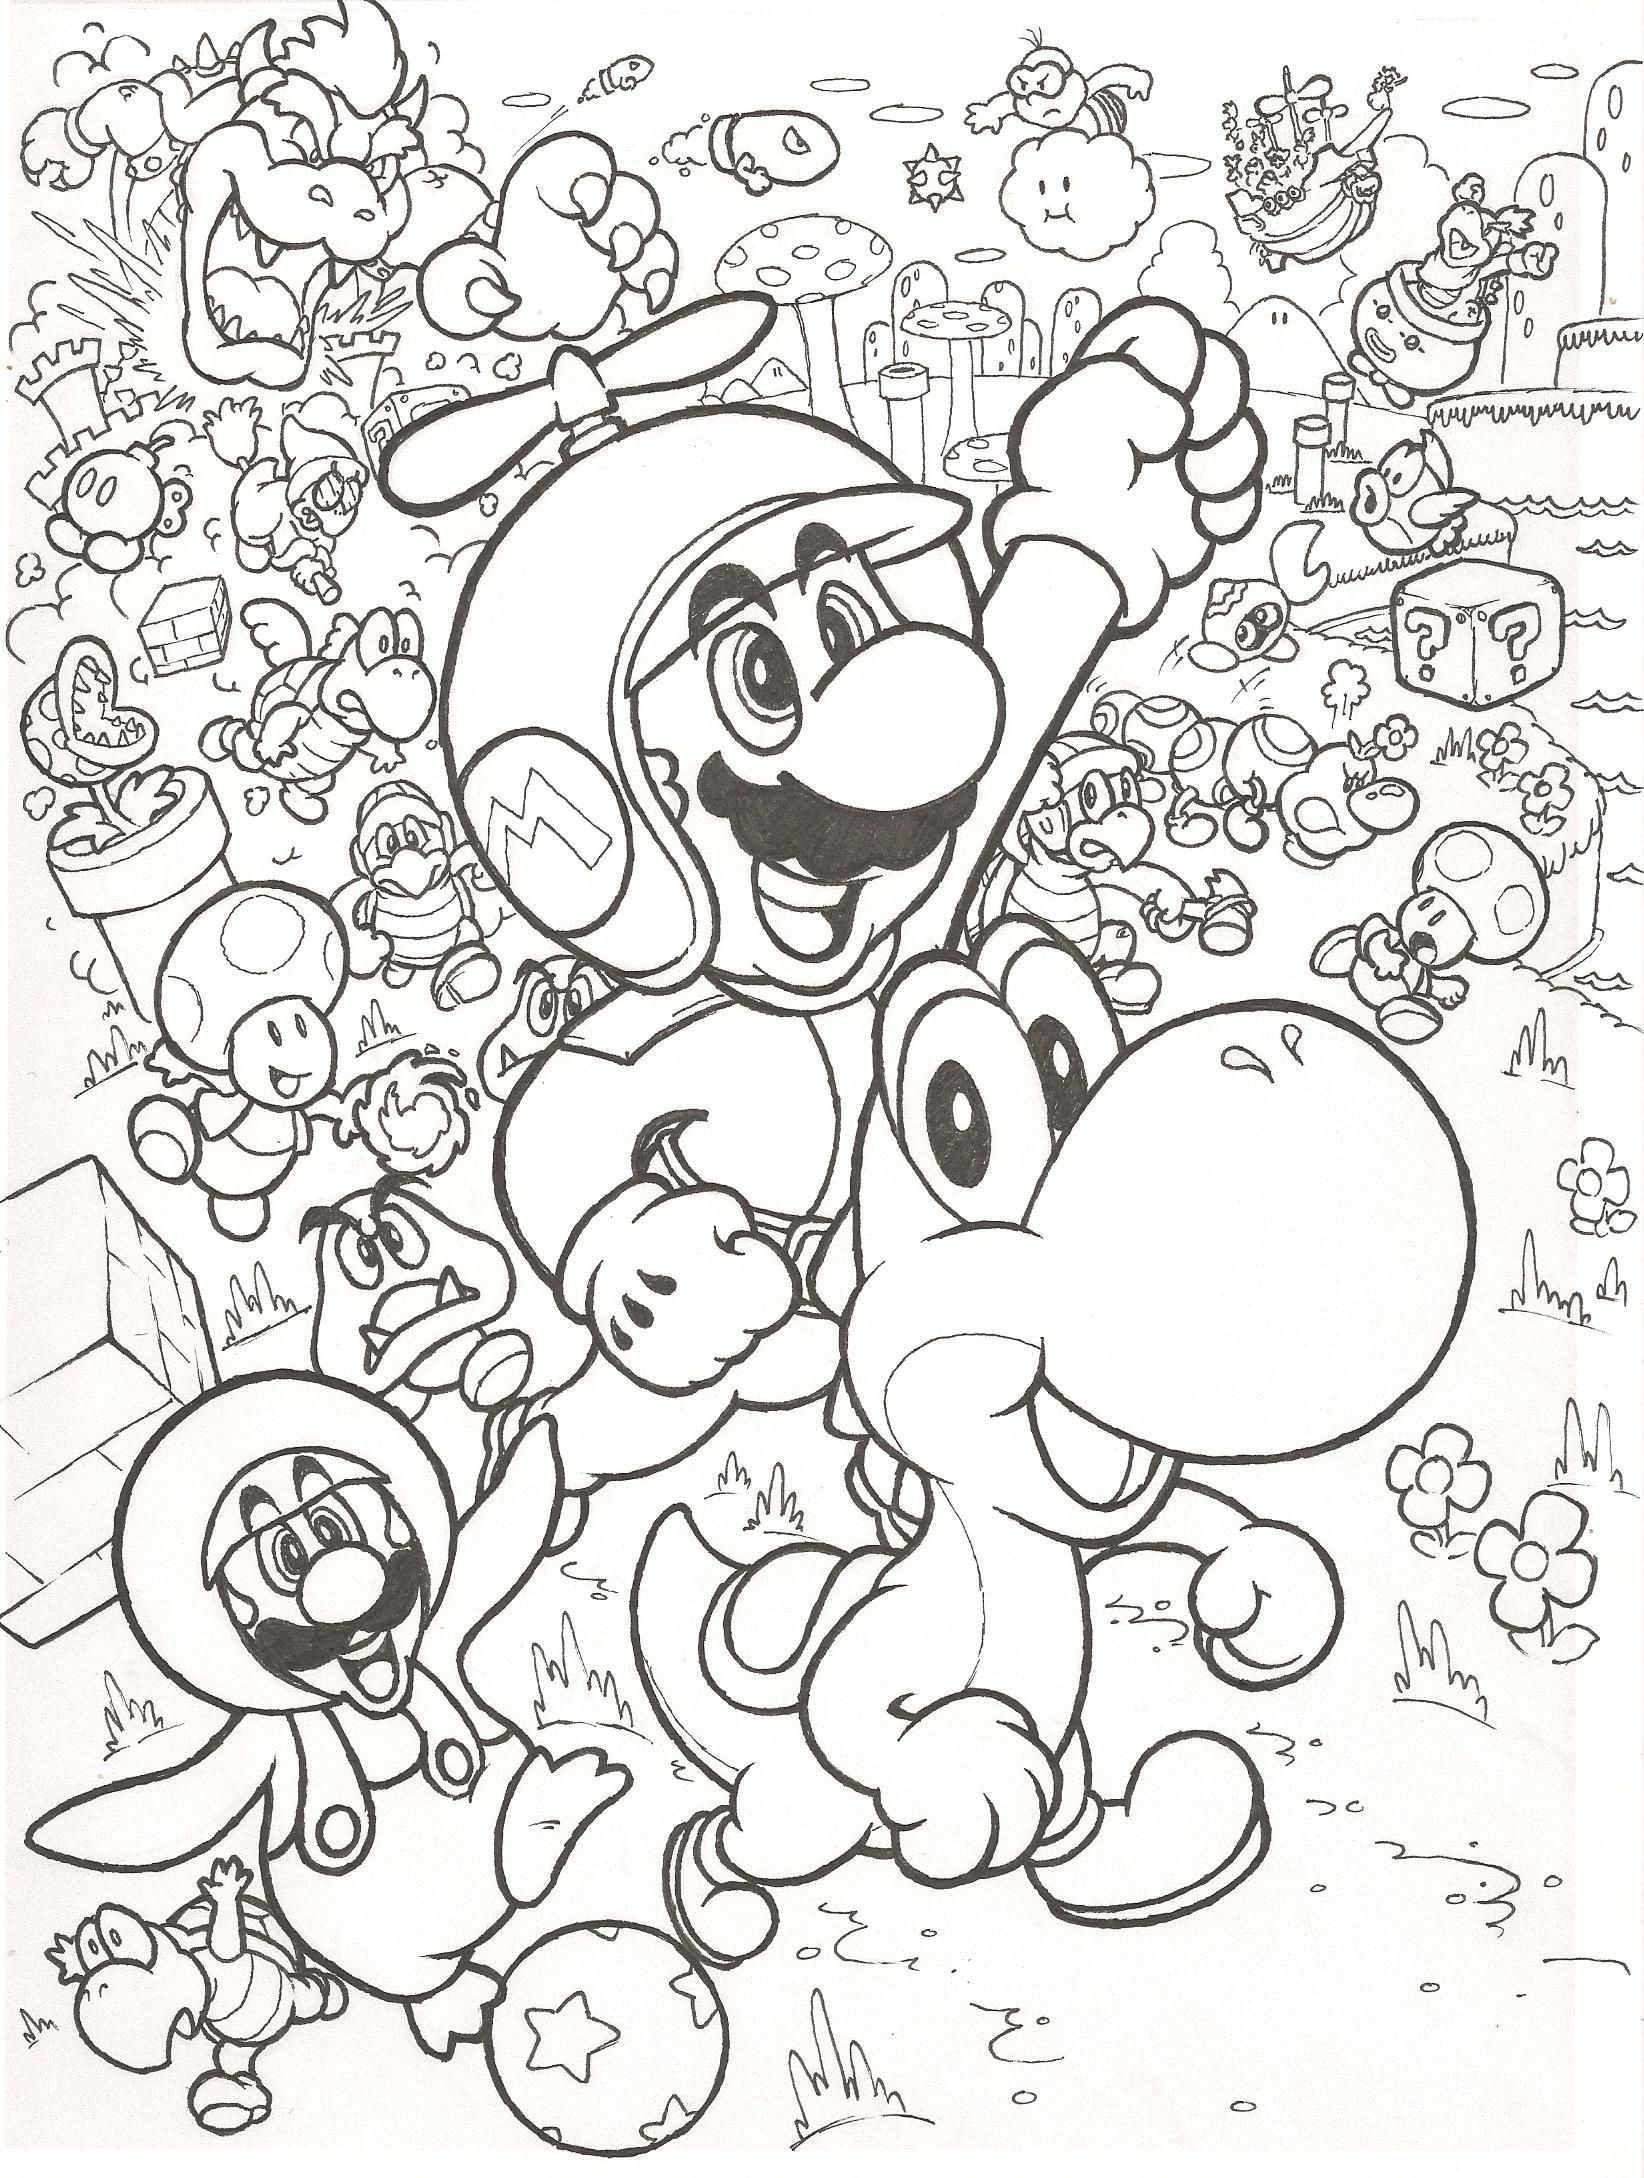 3ds Super Smash Bros Coloring Pages Coloring Pages For All Ages